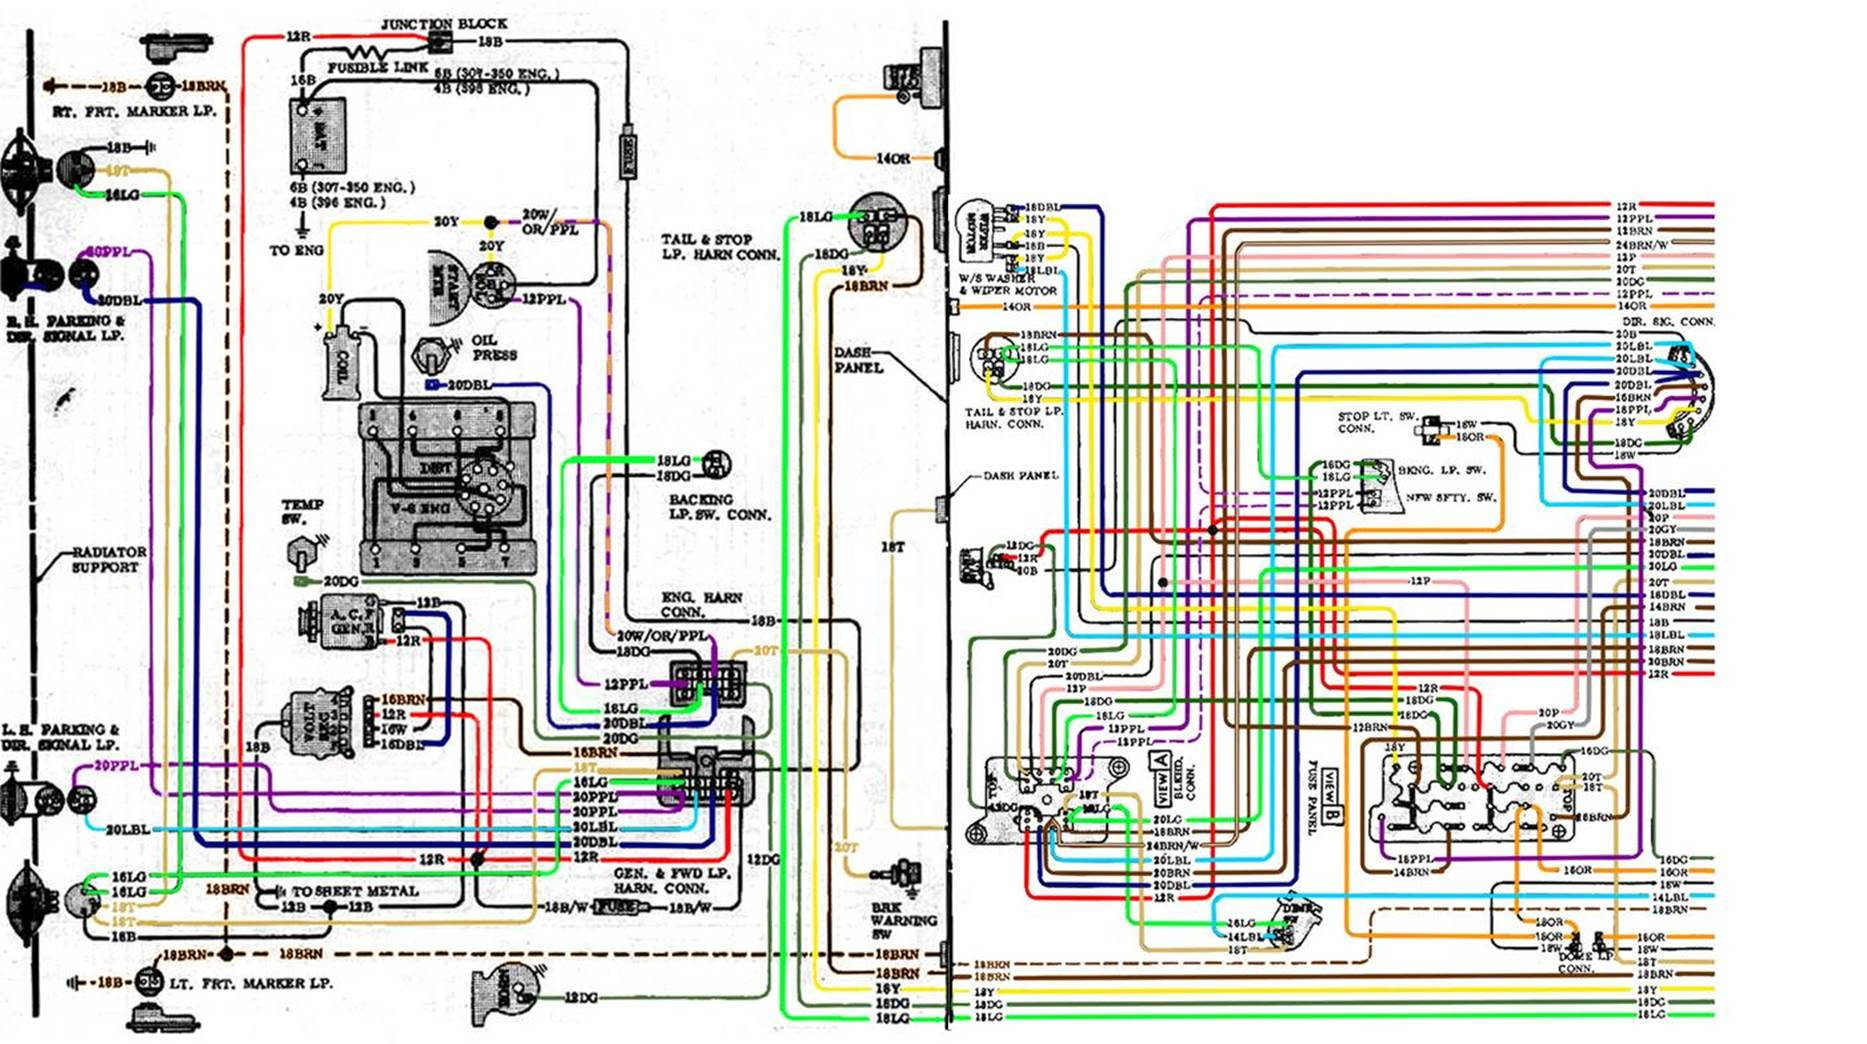 image002 67 72 chevy wiring diagram 1967 gmc pickup wiring diagram at panicattacktreatment.co